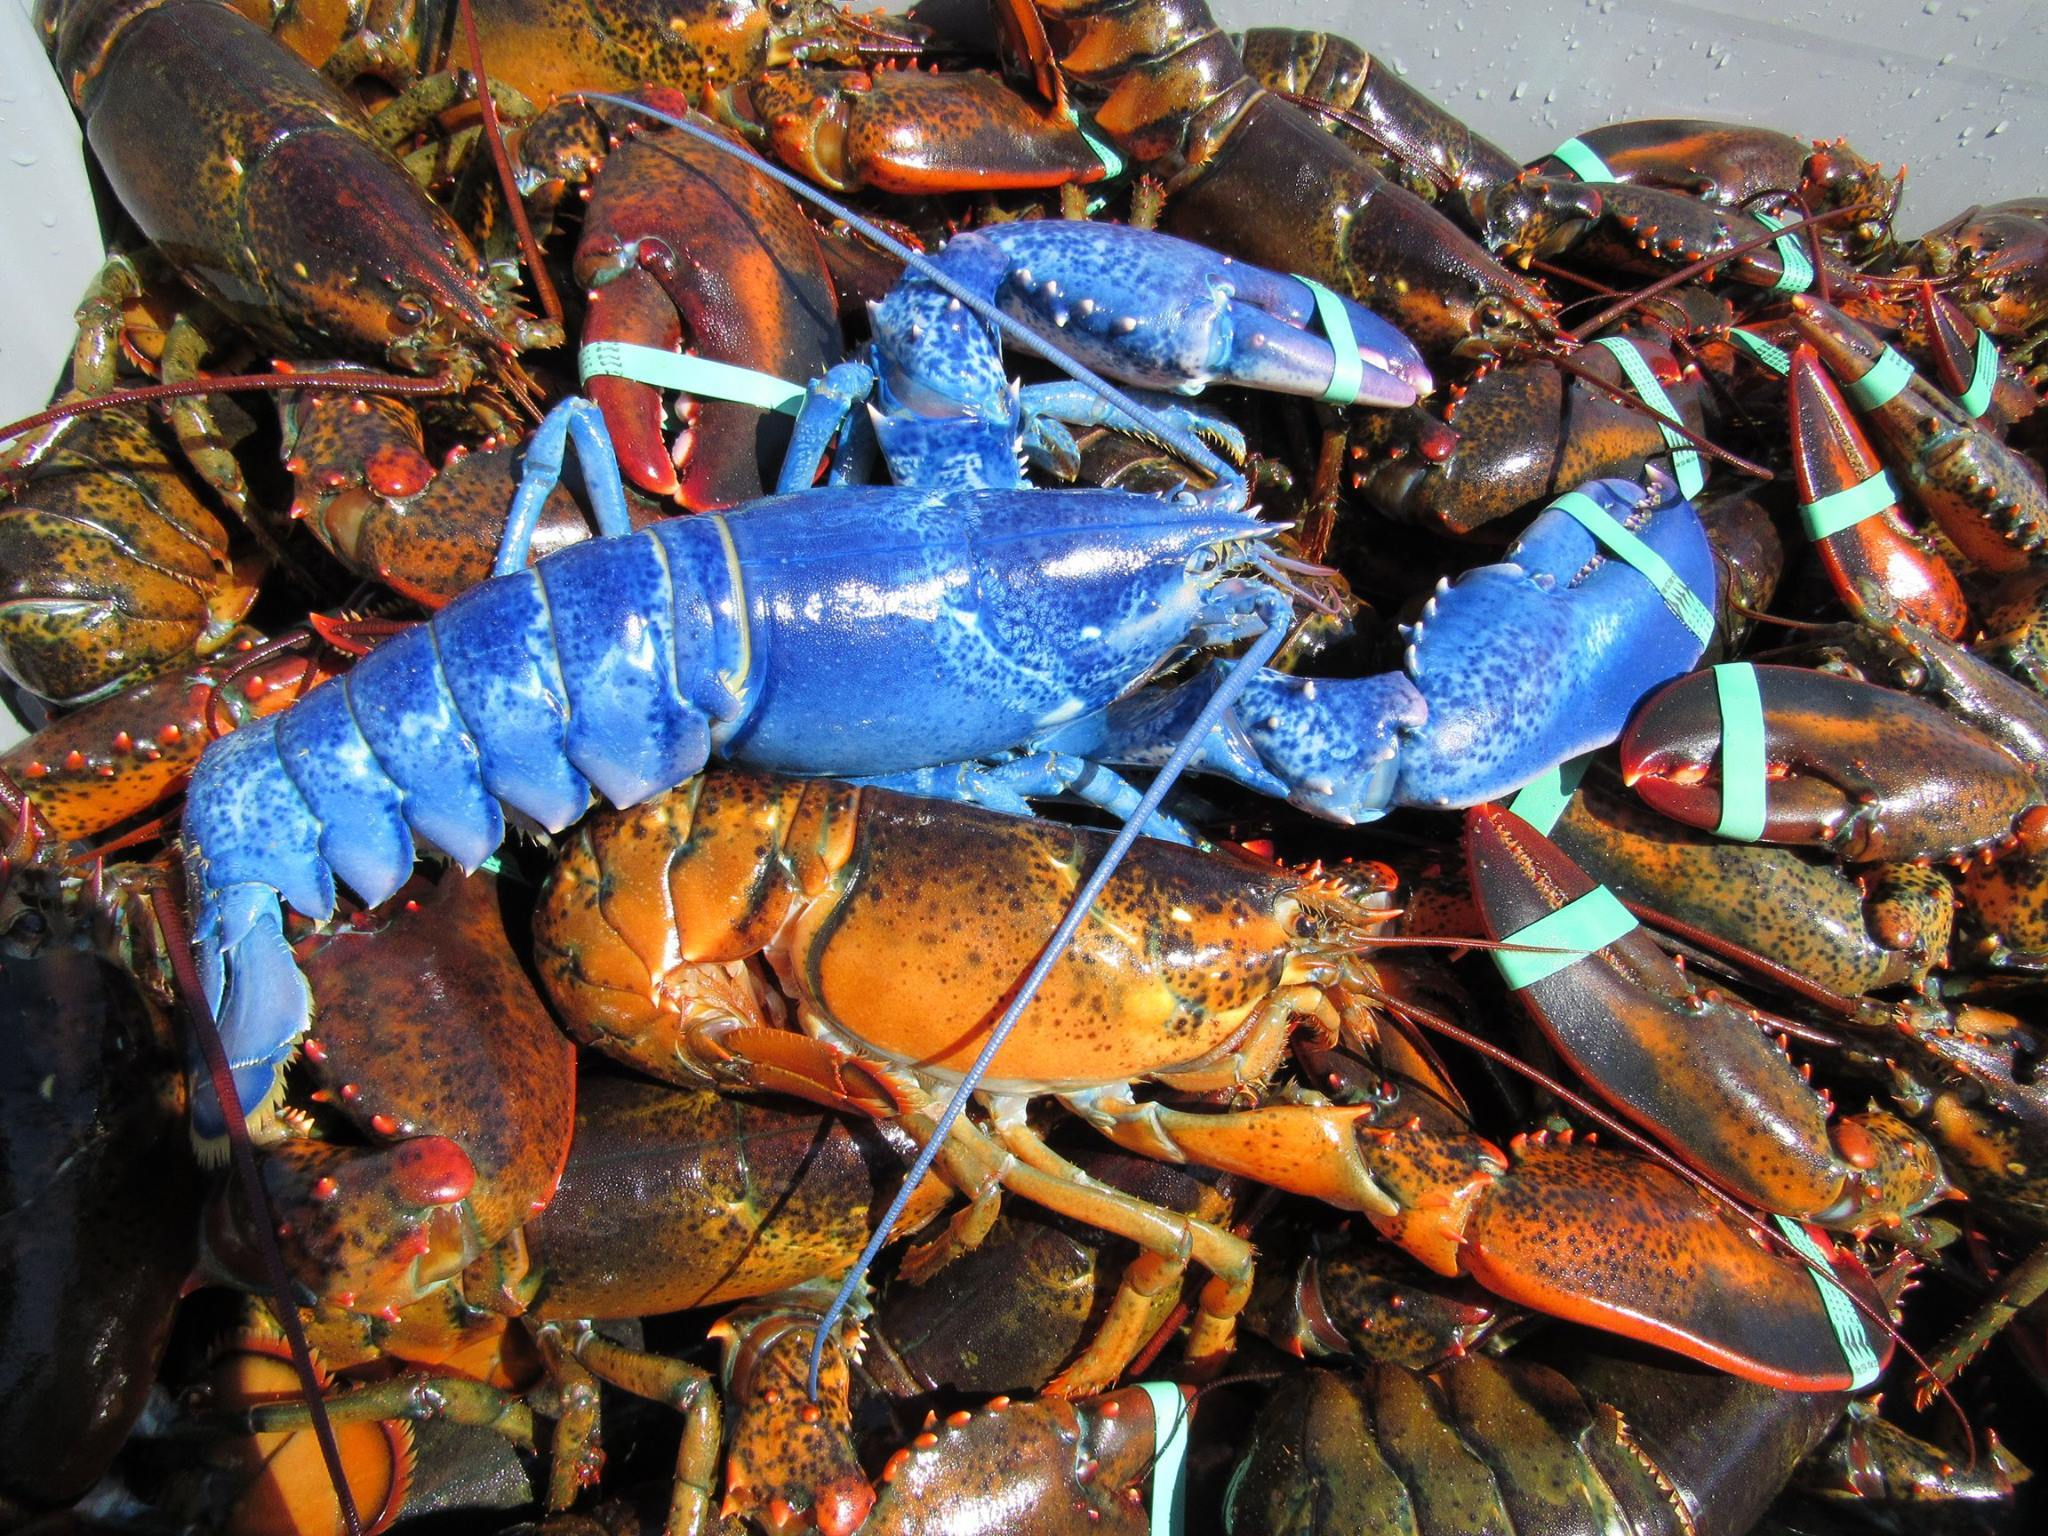 This lobster is so blue, it actually just looks like a cartoon come to life.